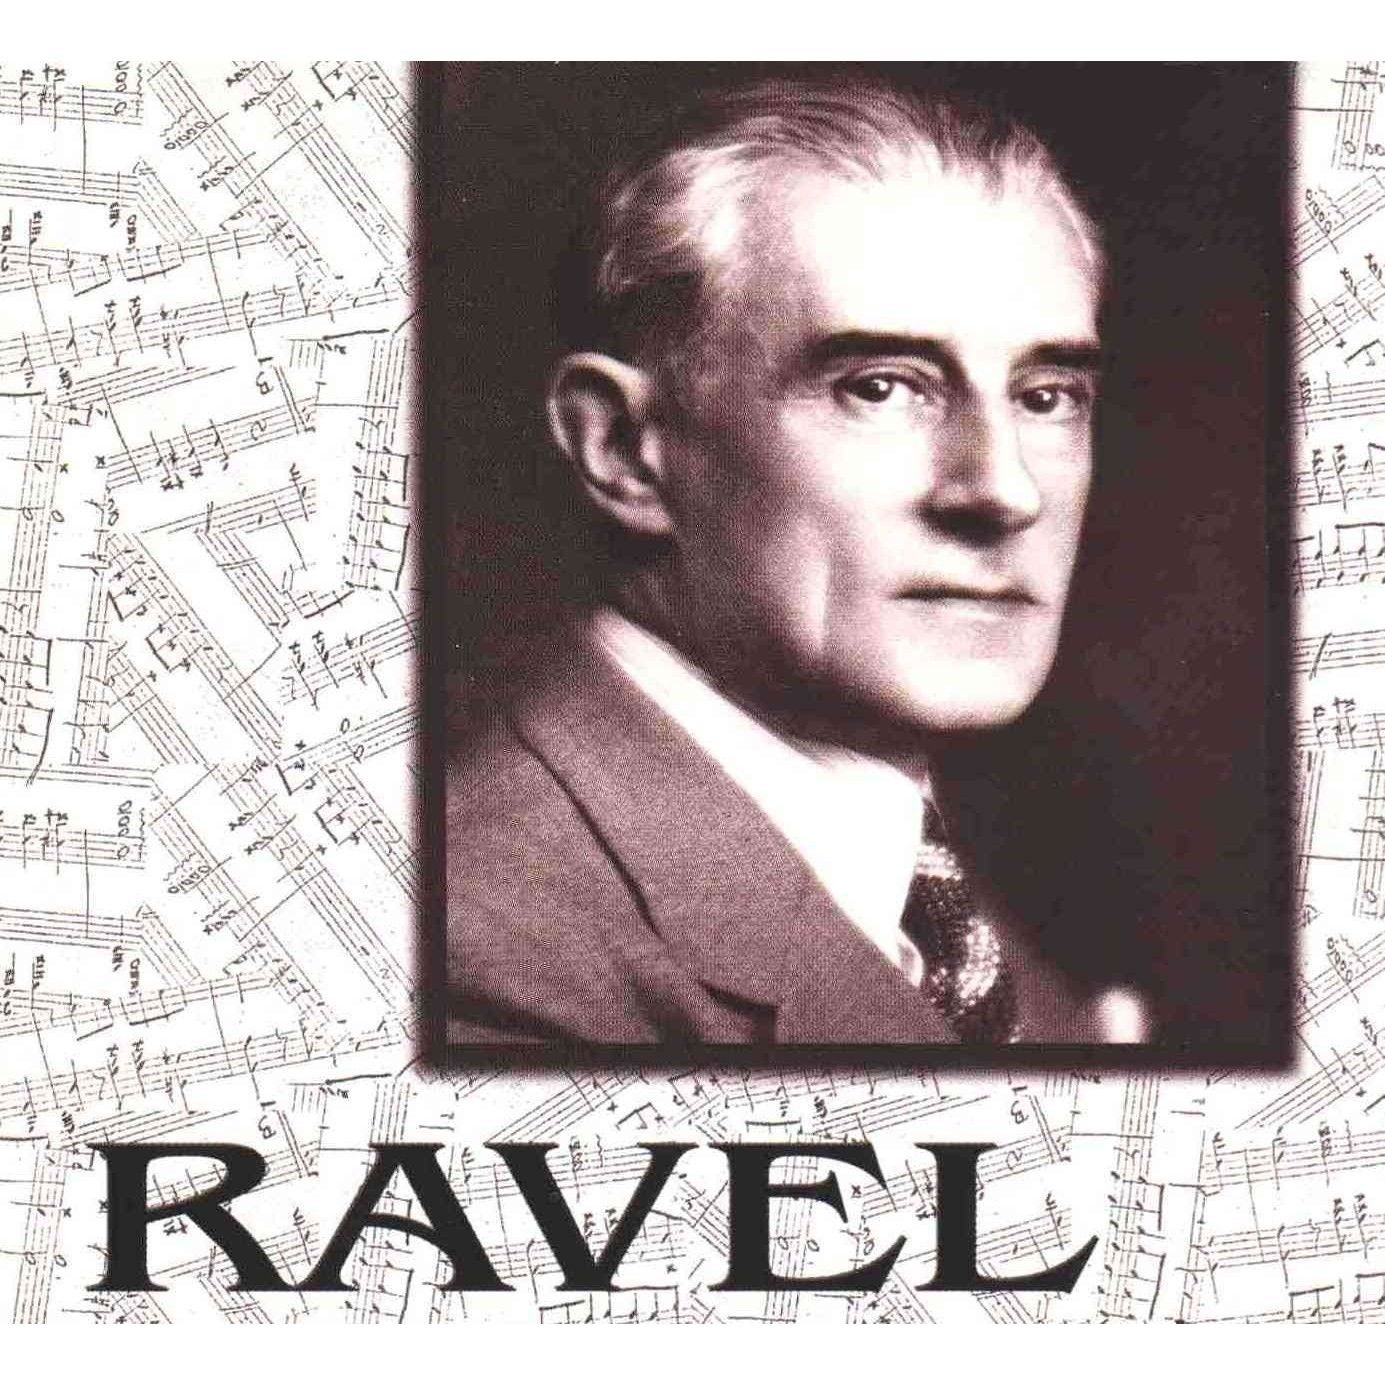 Maurice Ravel Ravel - András Kórodi - Introduction And Allegro • Danse Sacrée Et Danse Profane • Sonata For Flute Viola And Harp